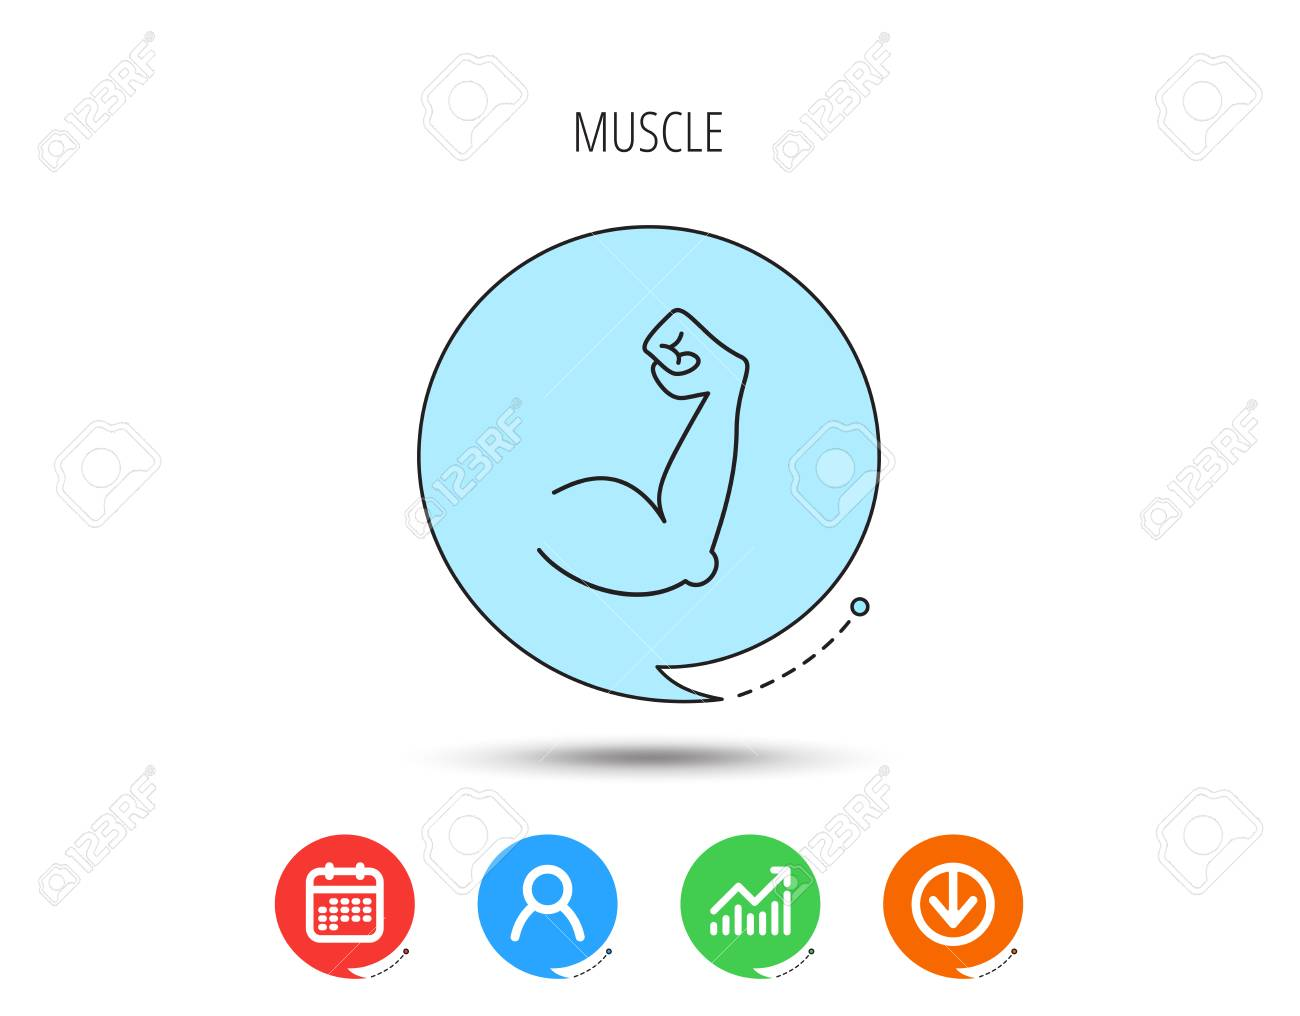 biceps muscle icon bodybuilder strong arm sign weightlifting